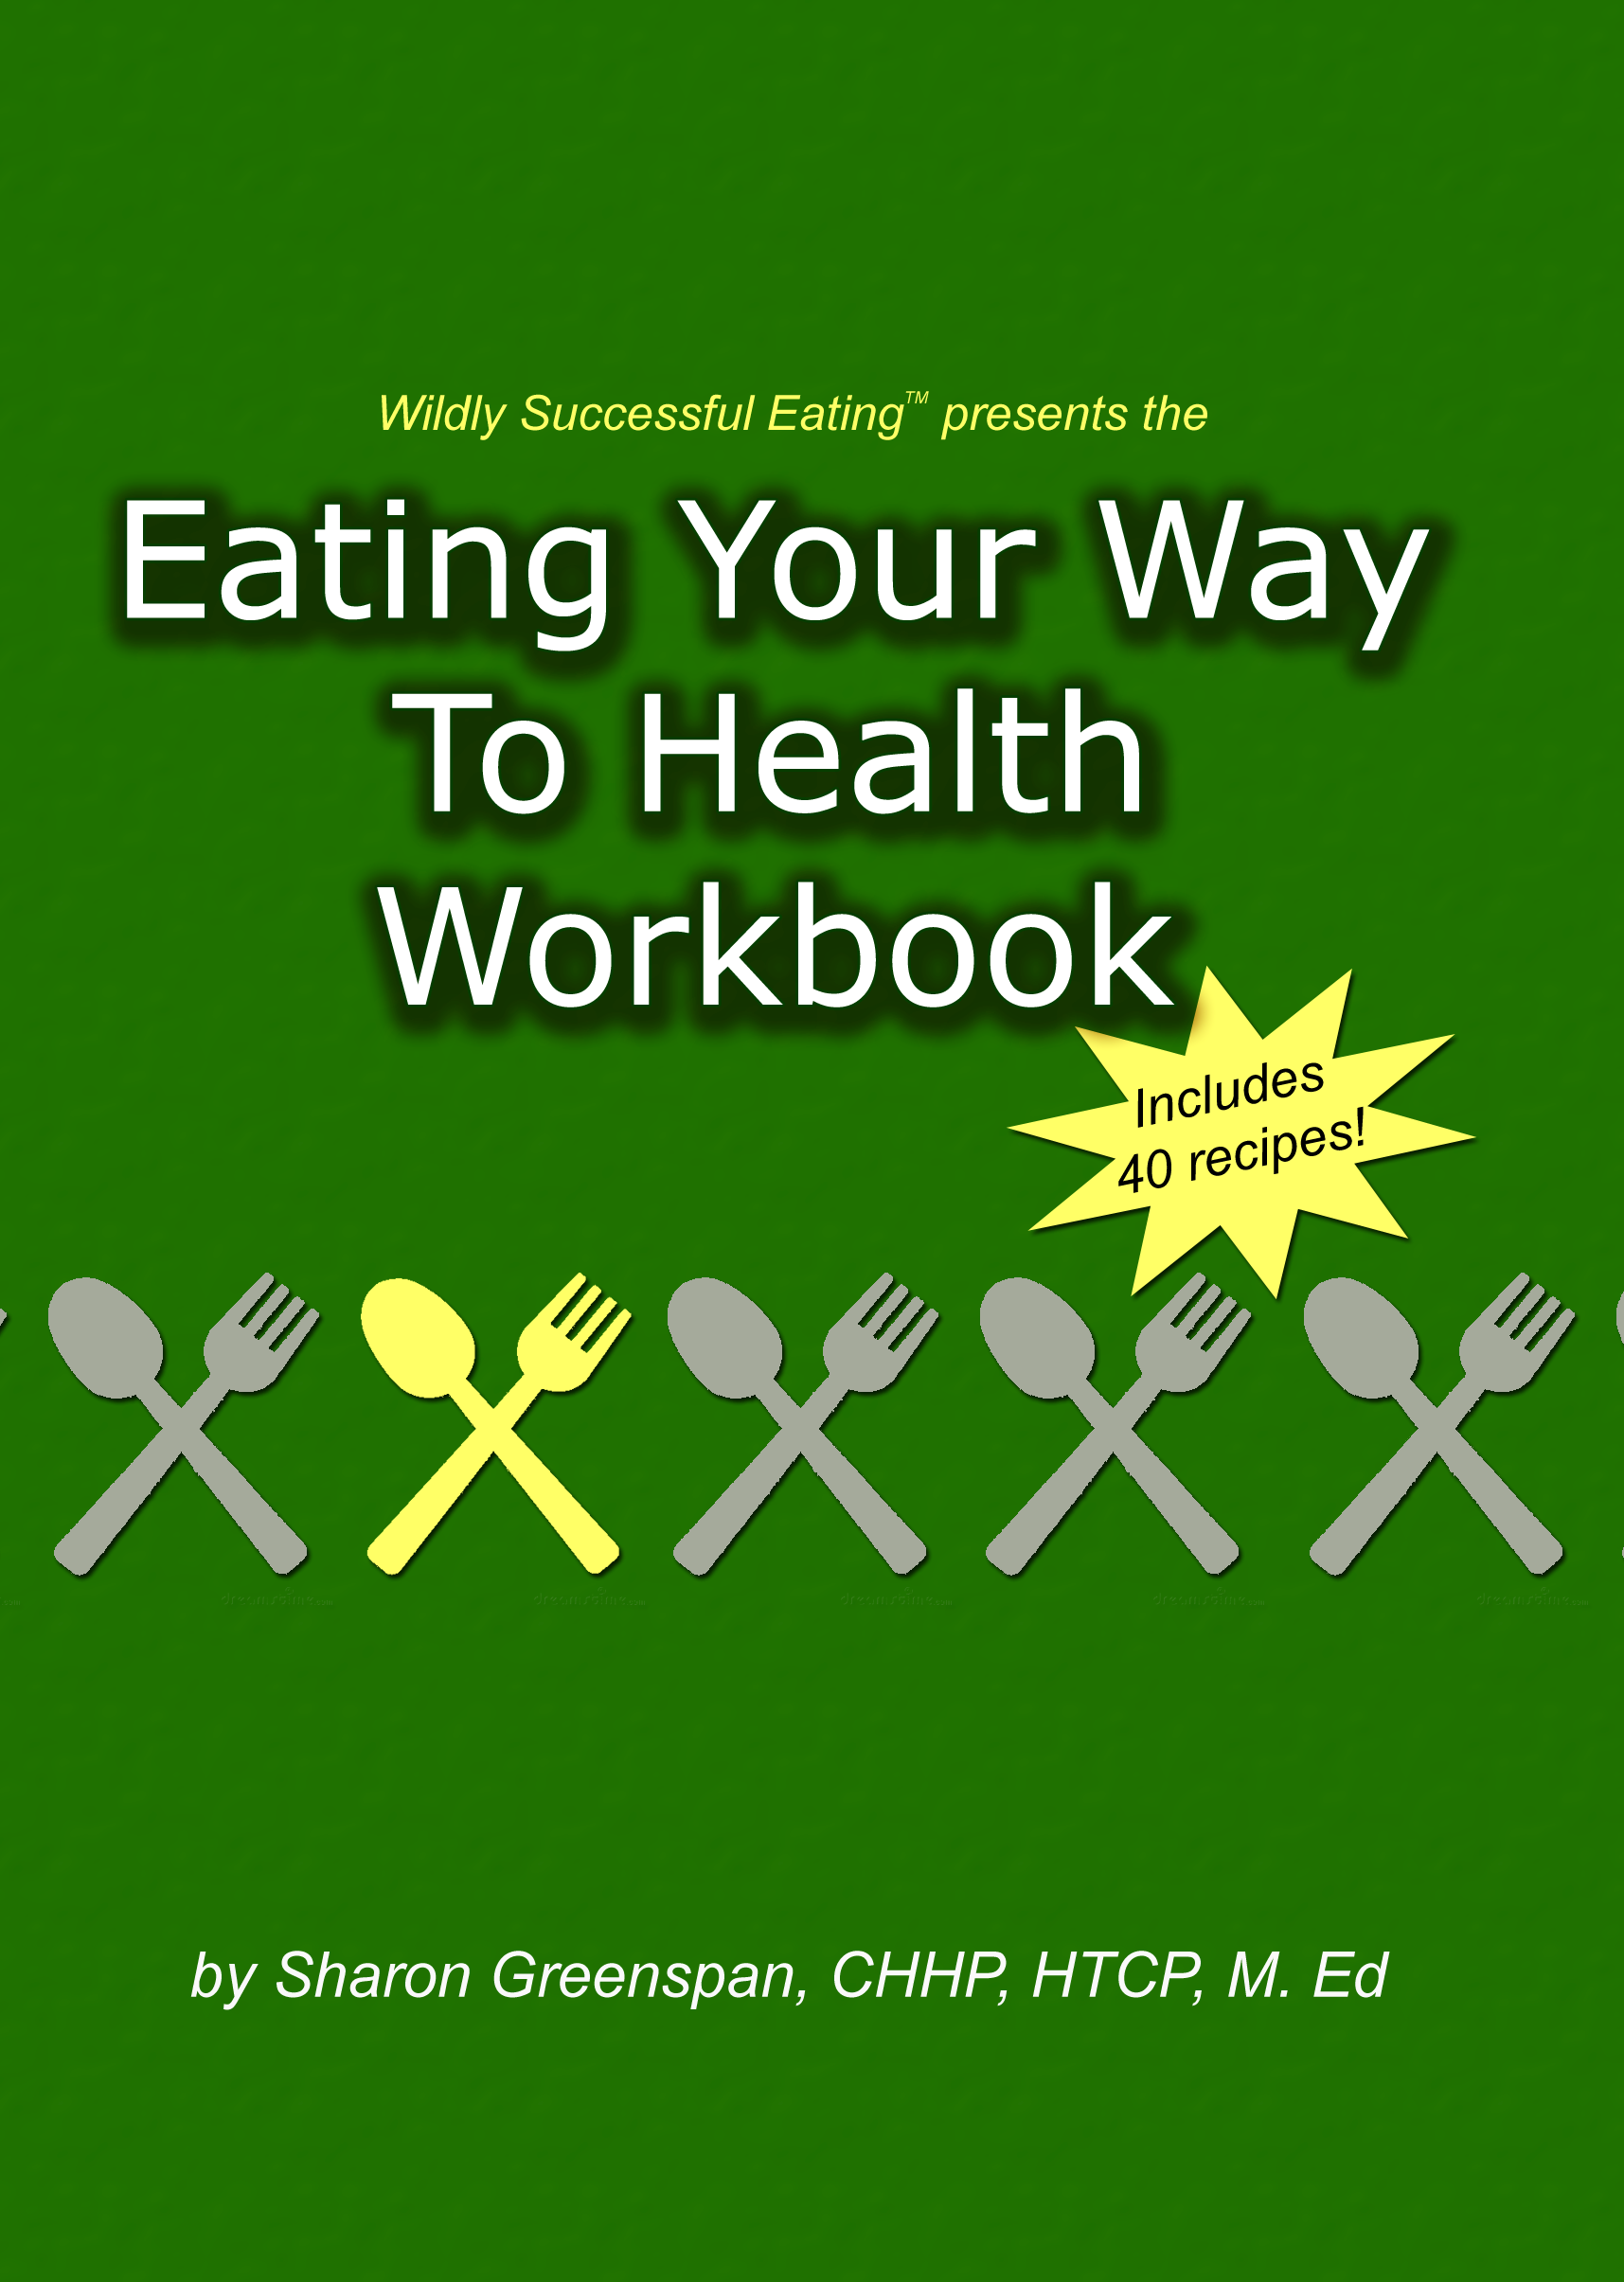 Eating-Your-Way-To-Health-Workbook